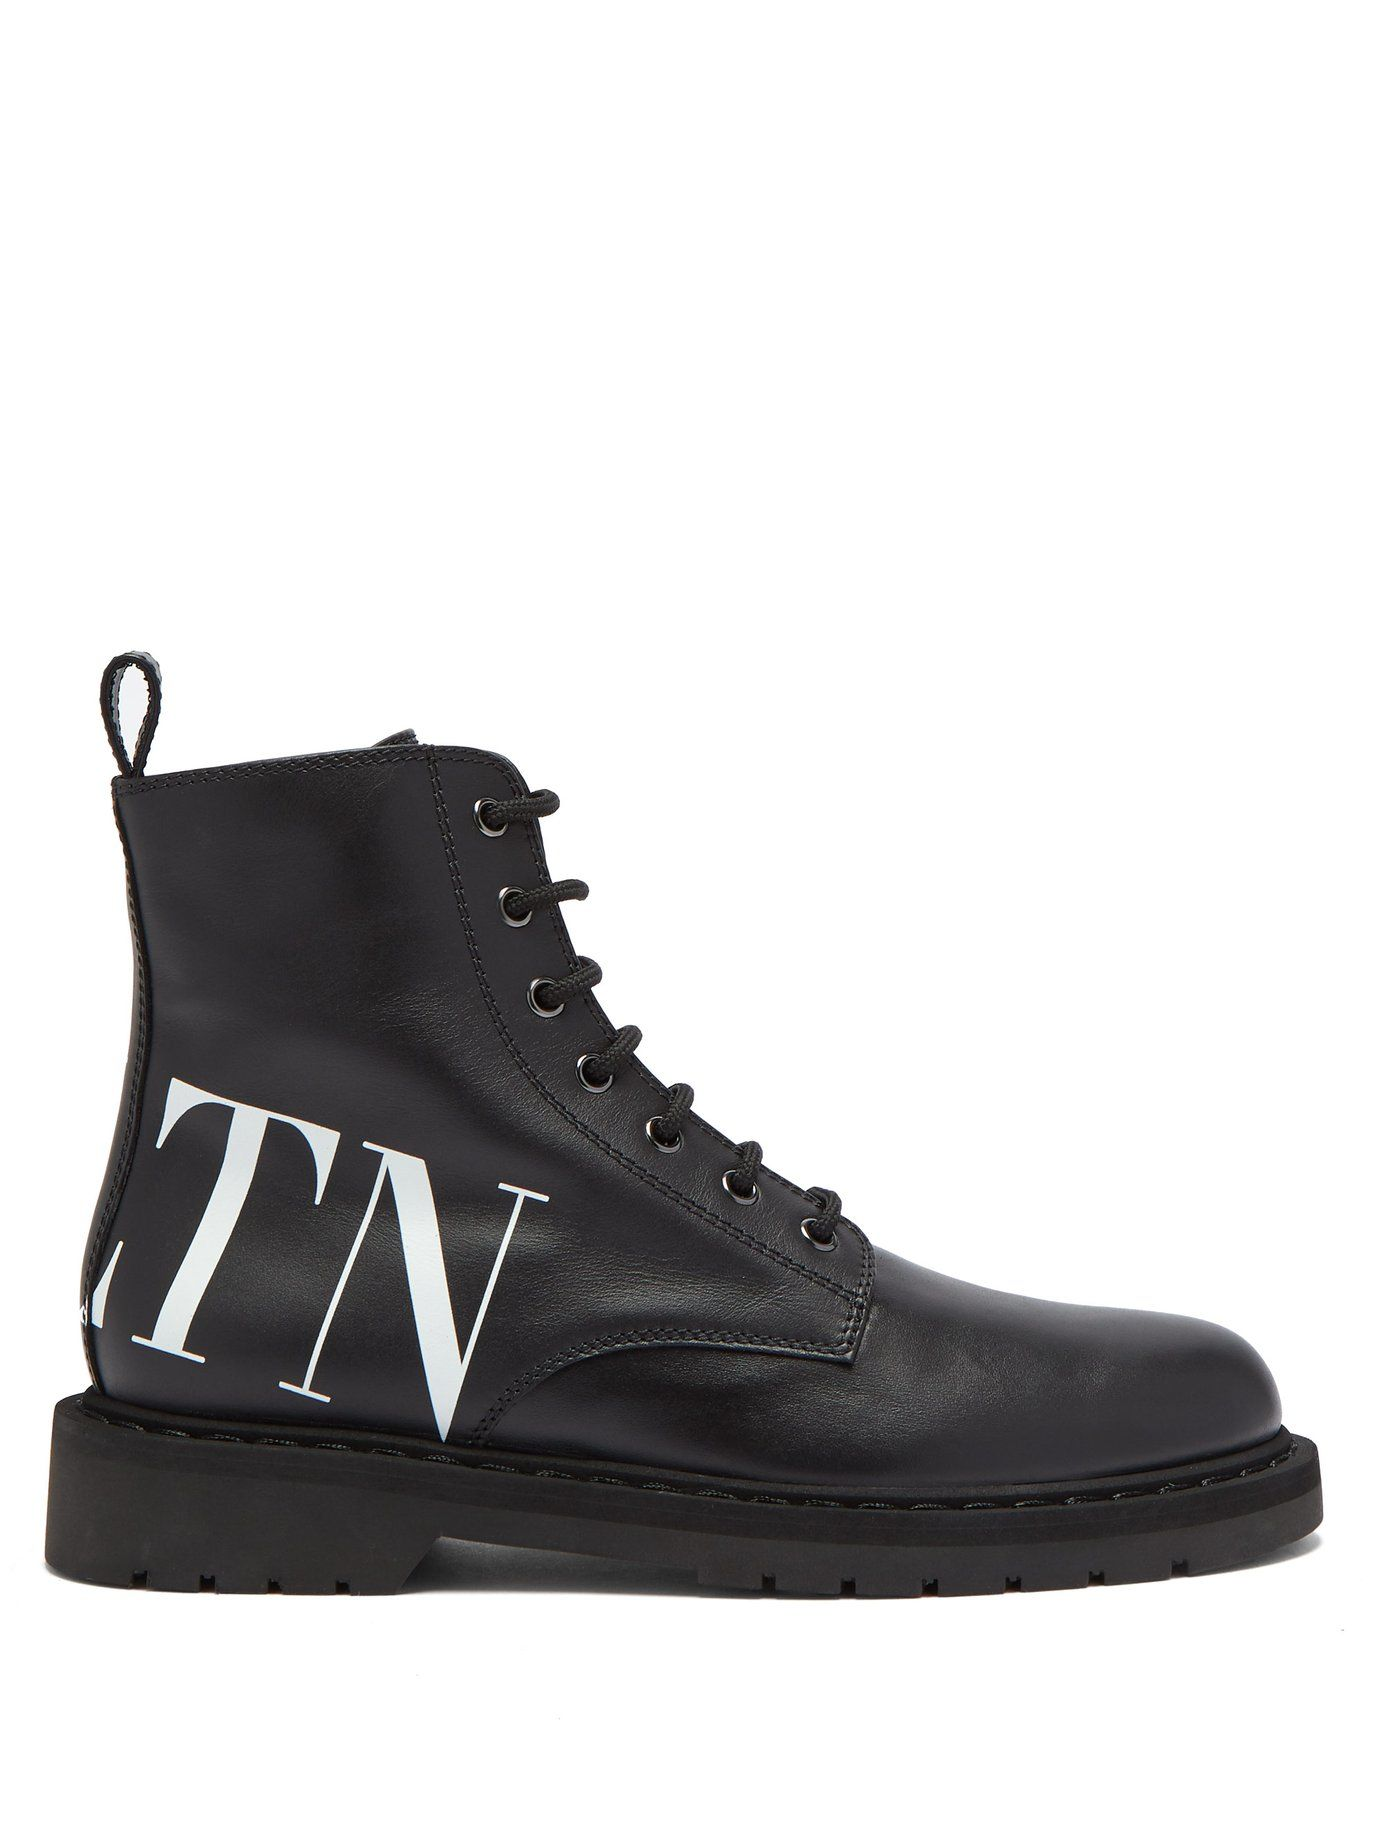 VLTN lace up leather ankle boots | Valentino